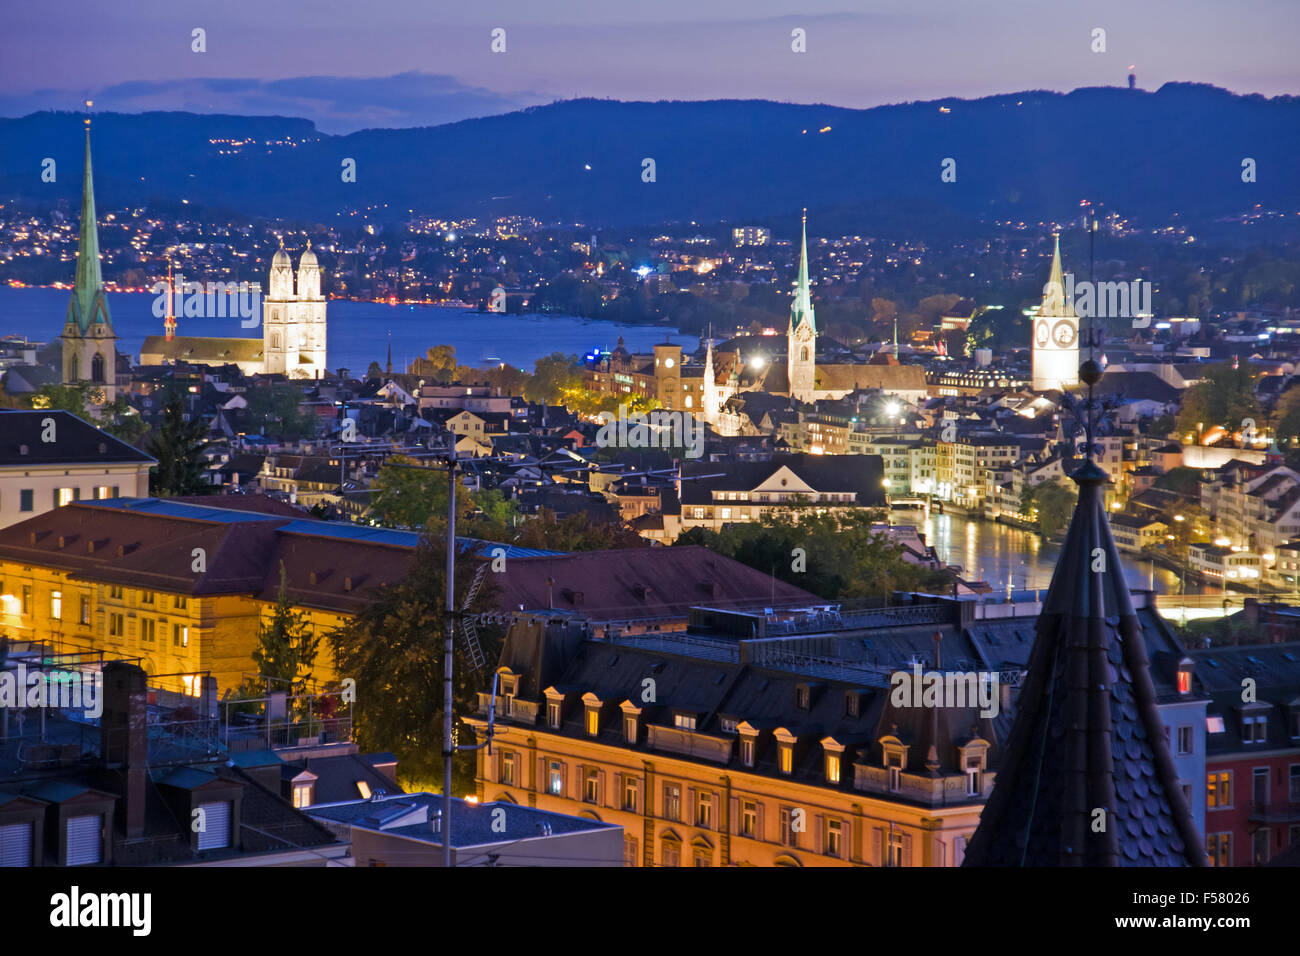 A view over beautiful Zurich at night Stock Photo